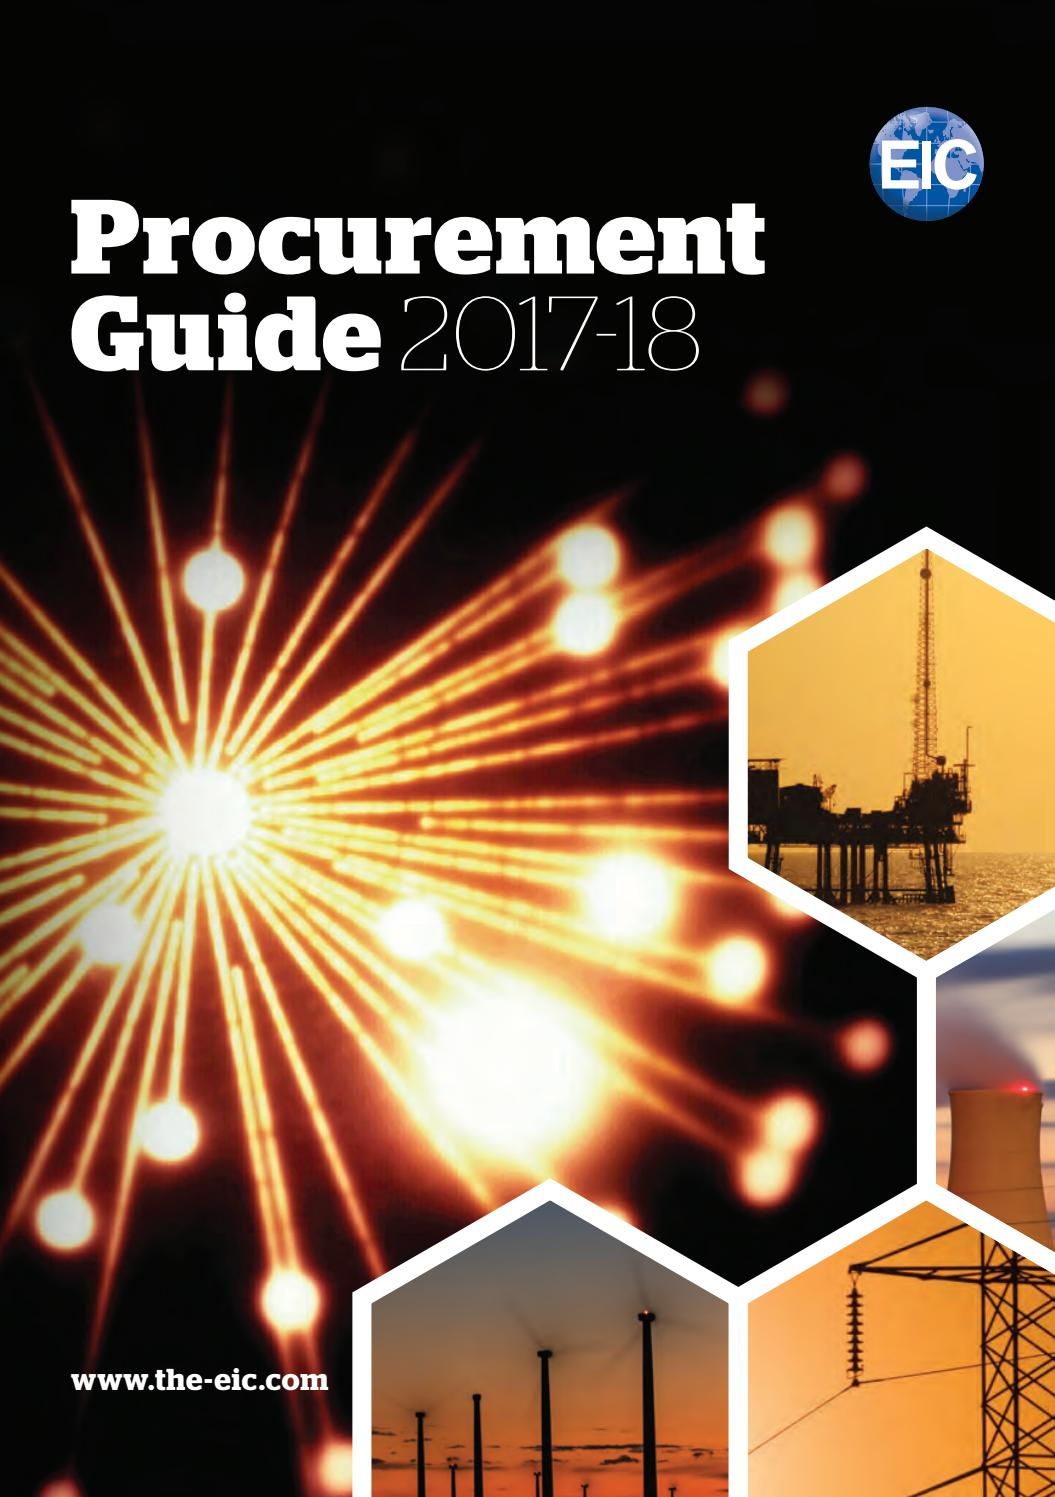 Circuits 8085 Projects Blog Archive Hobbyfmtransmittercircuit Eic Procurement Guide 2017 18 By Energy Industries Council Issuu